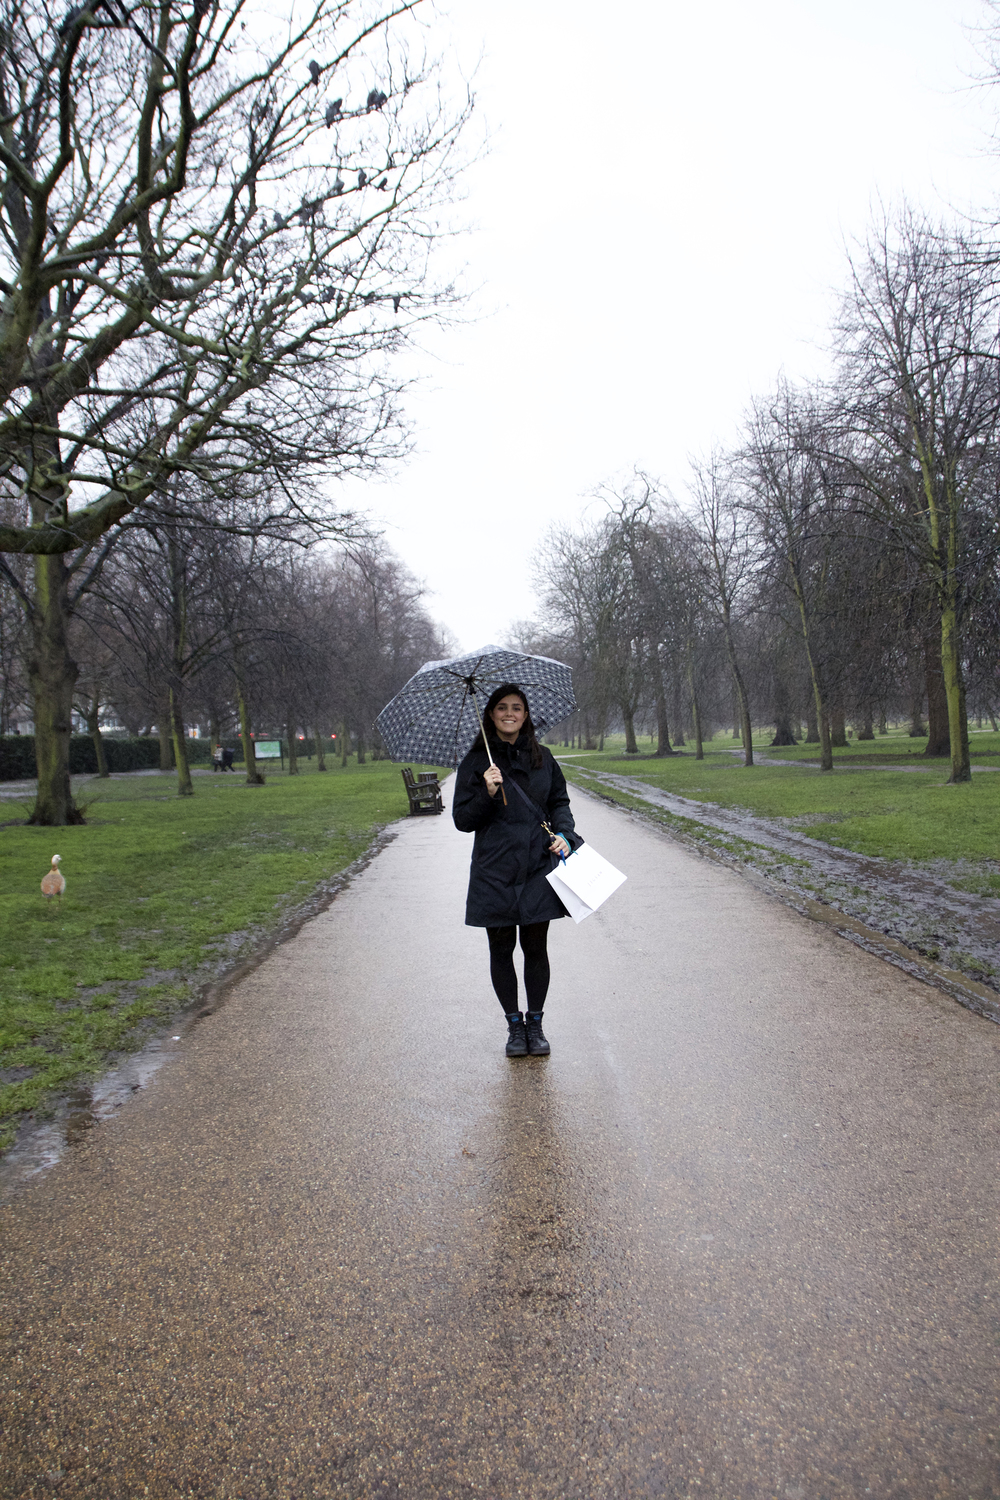 Enjoying a rainy walk through Kensington Gardens (and totes love my duck friend to the left).